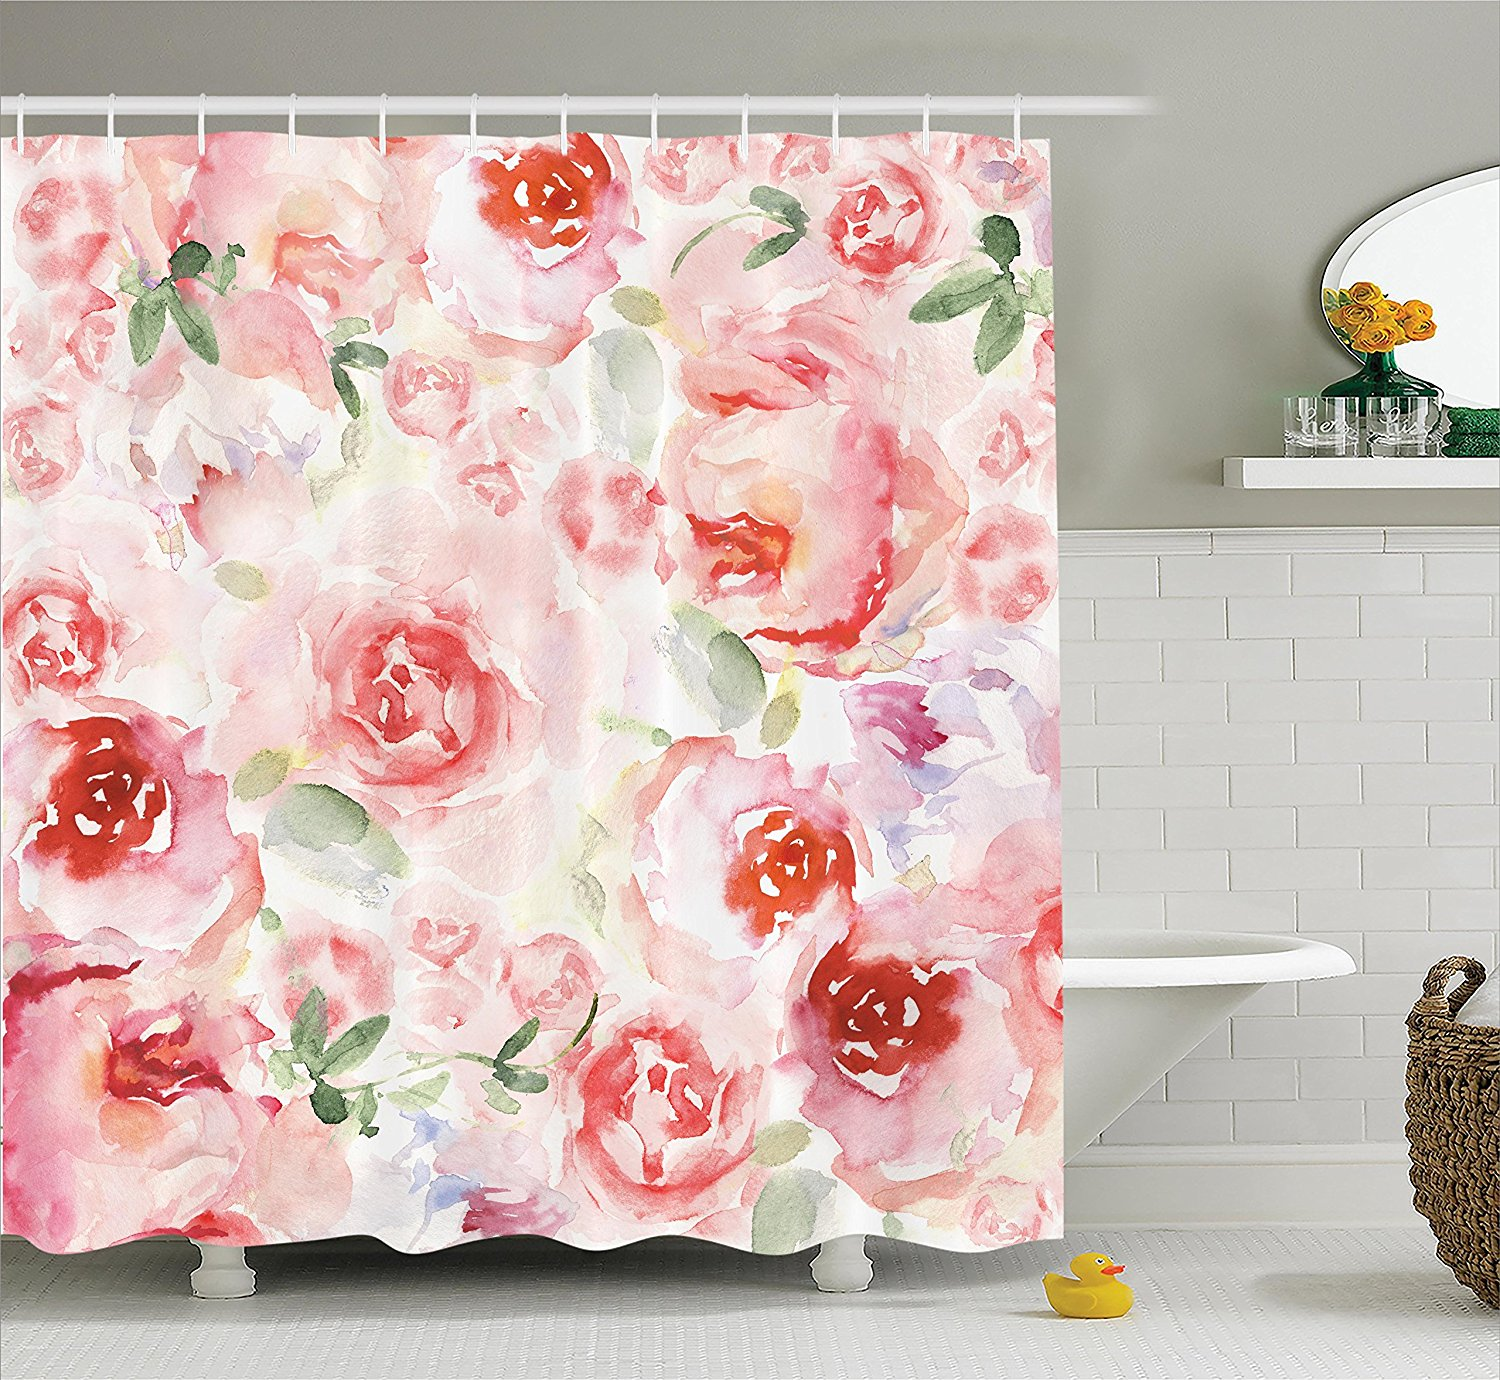 Memory Home Watercolor Flower Shower Curtain Decor Pink Roses Vintage Style  Polyester Fabric Bathroom Shower Curtain